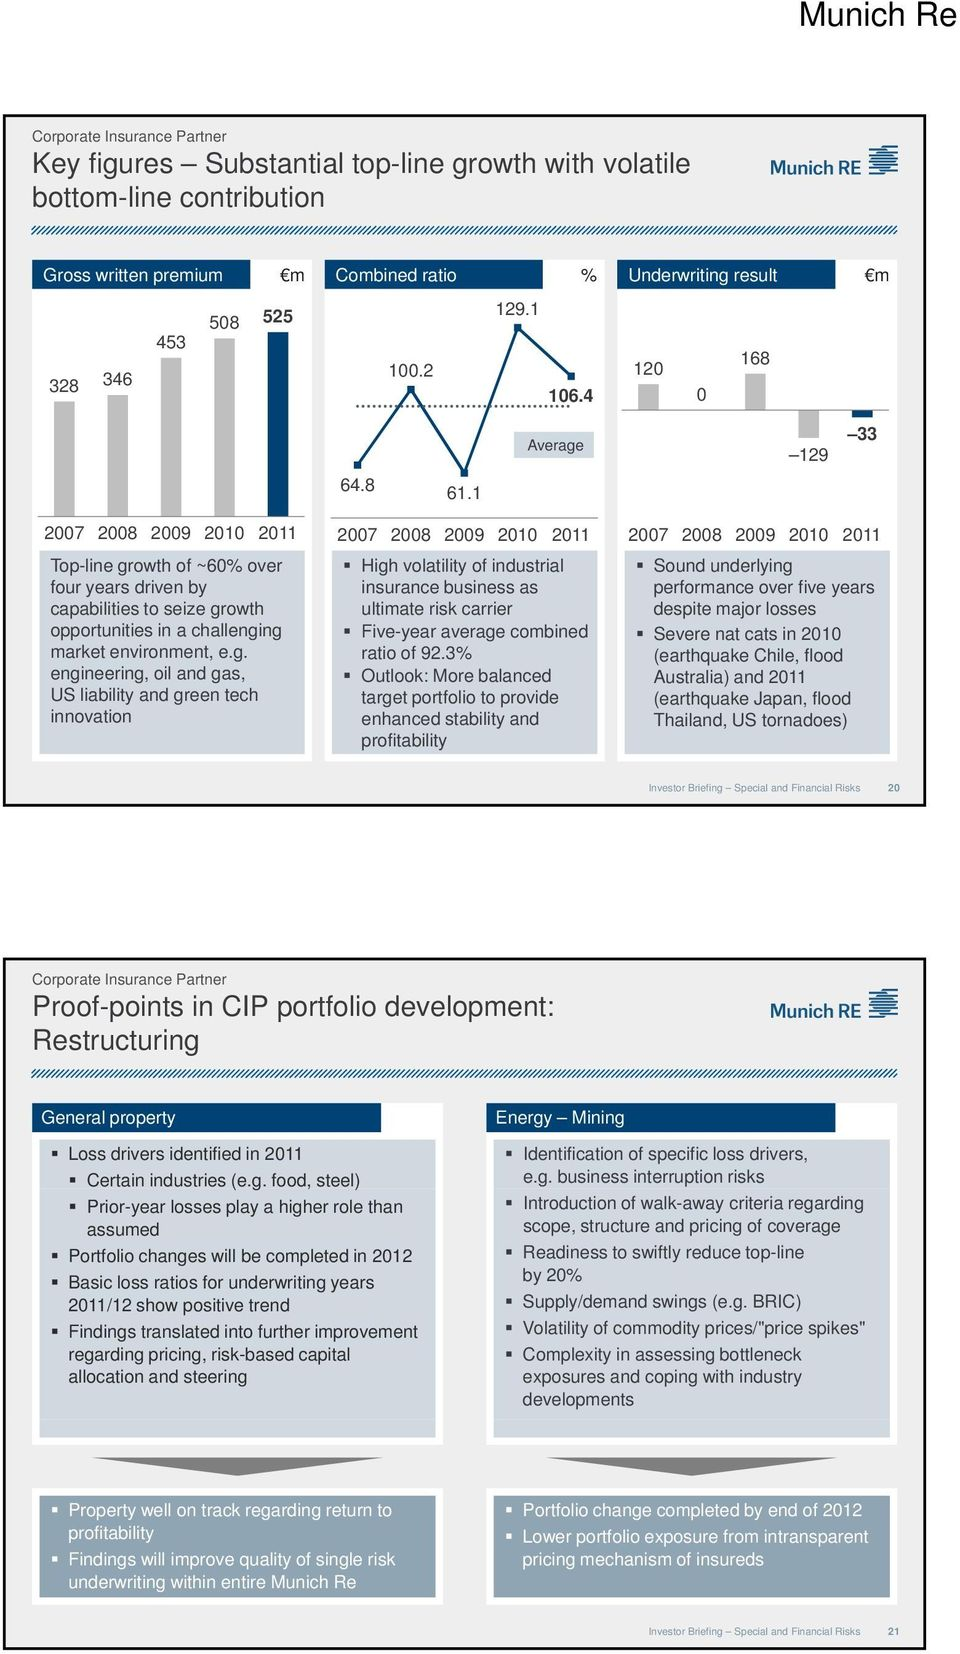 3 Outlook: More balanced target portfolio to provide enhanced stability and profitability Sound underlying performance over five years despite major losses Severe nat cats in 2010 (earthquake Chile,